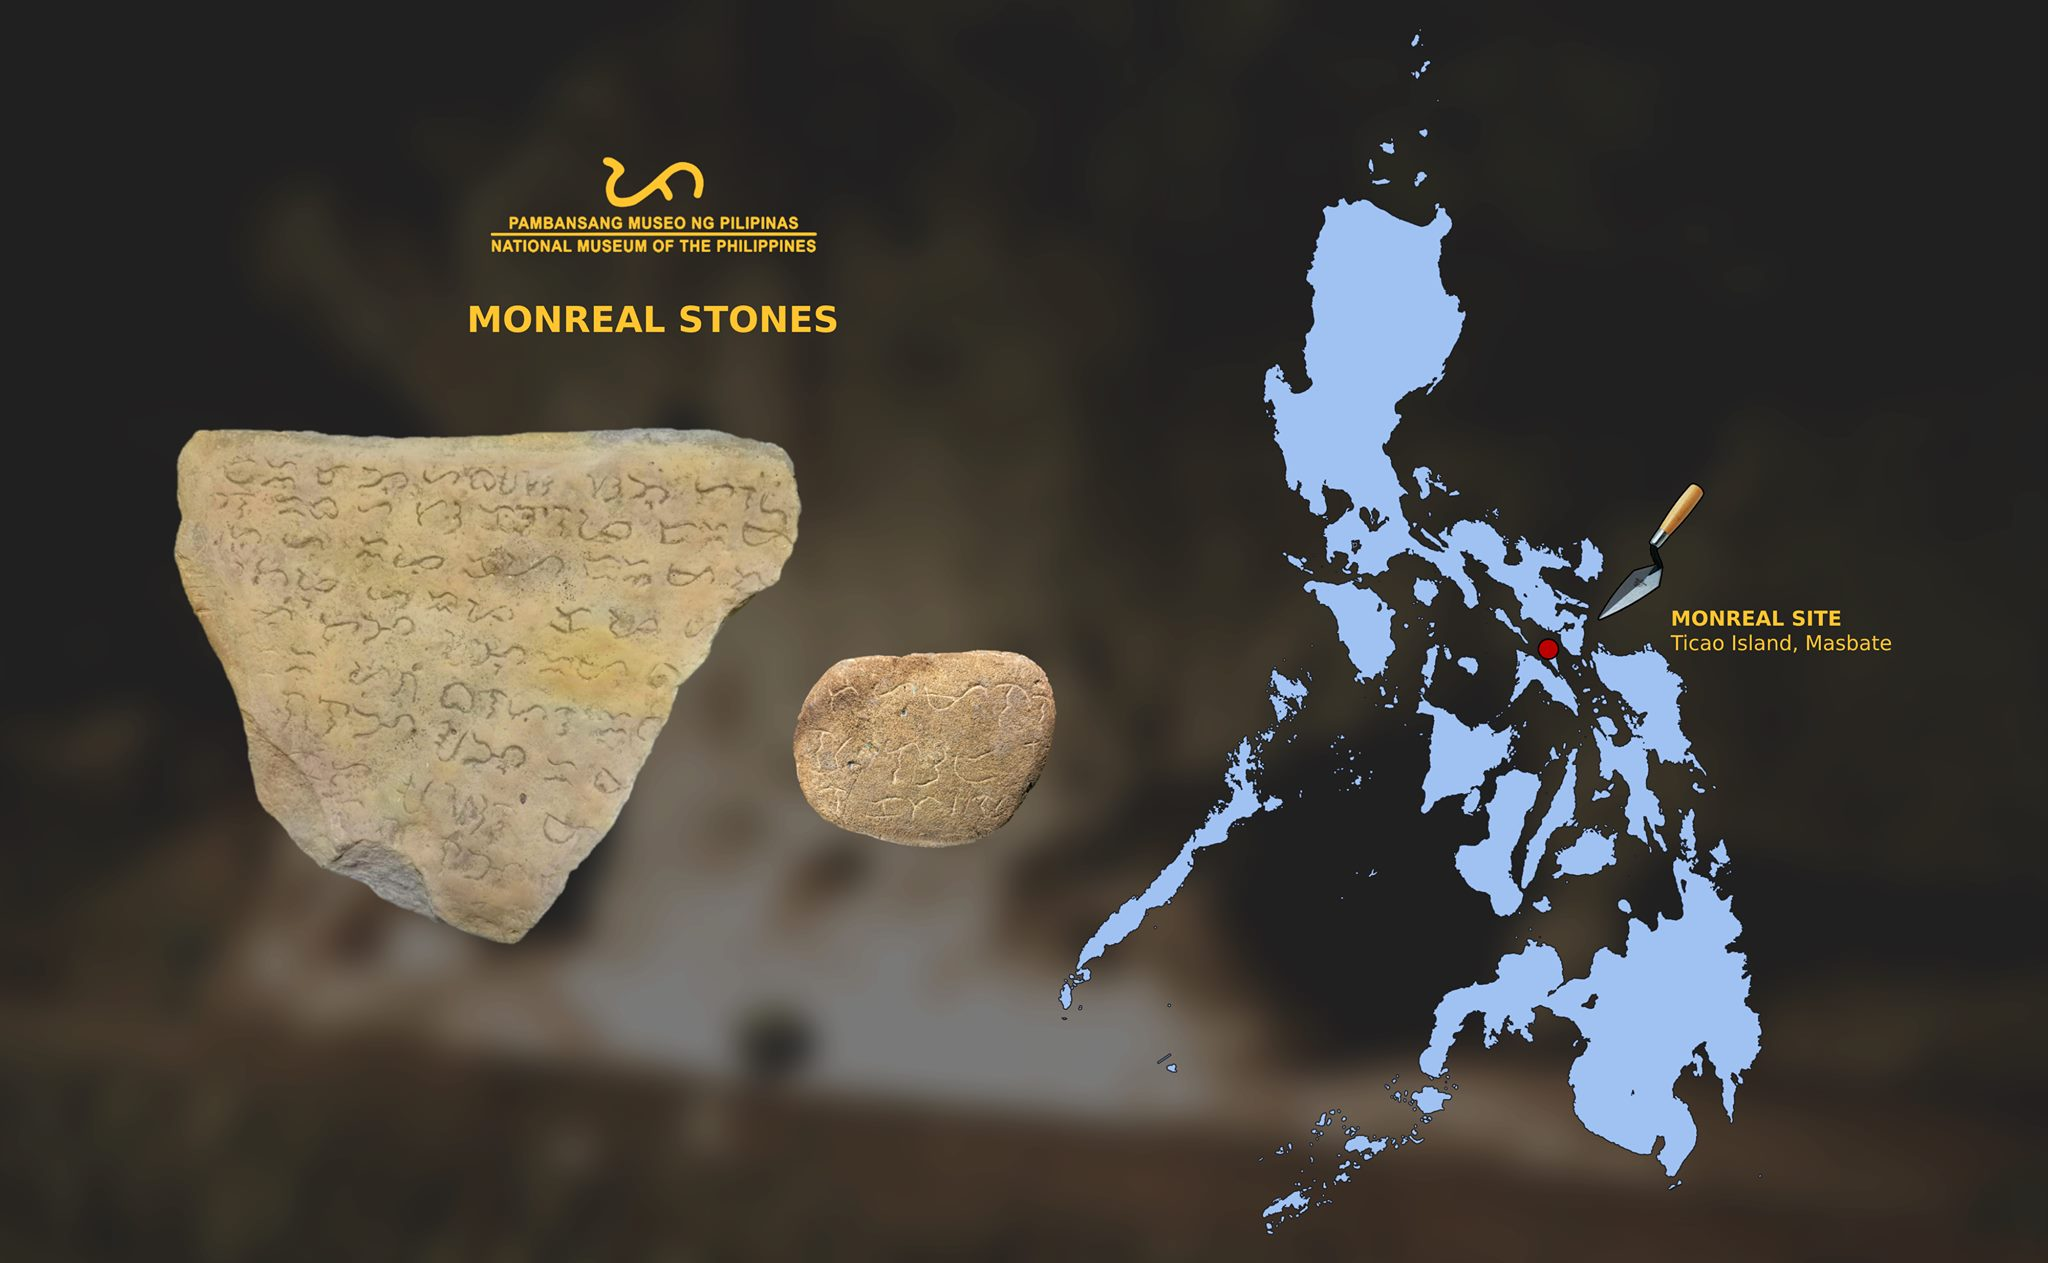 Monreal Stones from Masbate   Interesting Artifact highlighting the Philippine's Distinctive Syllabic Writing Systems